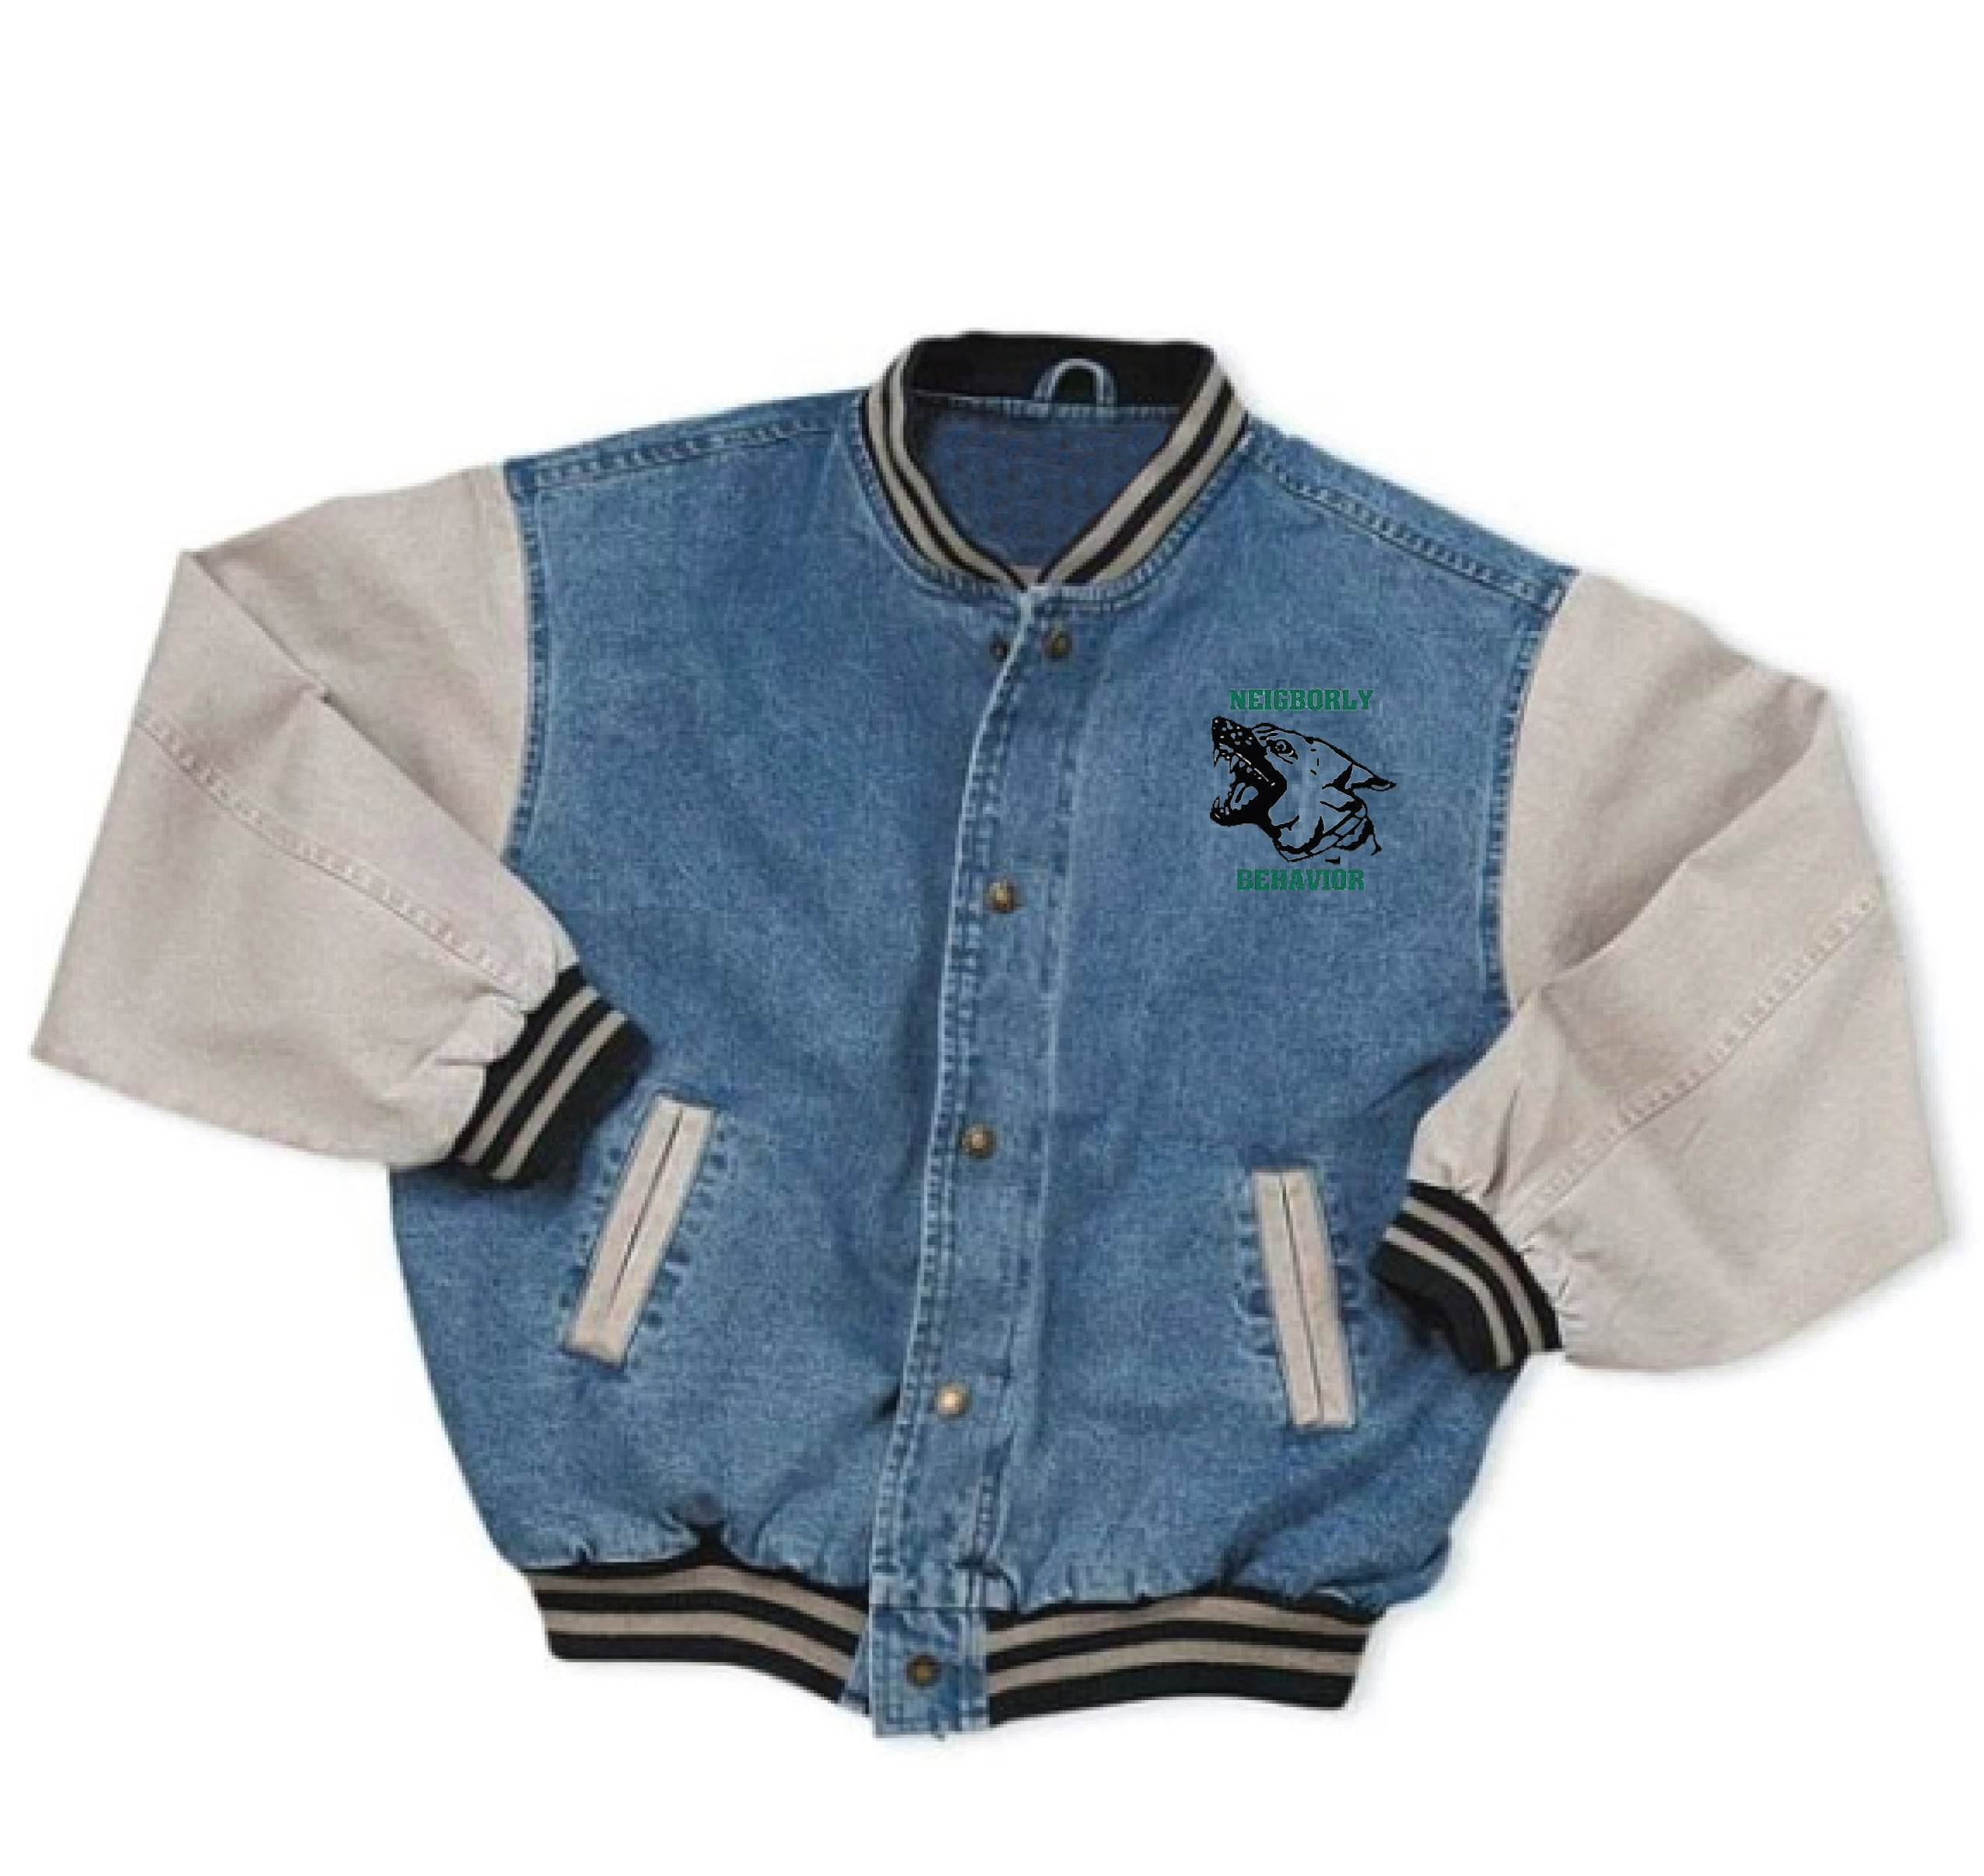 NB LETTERMAN JACKET